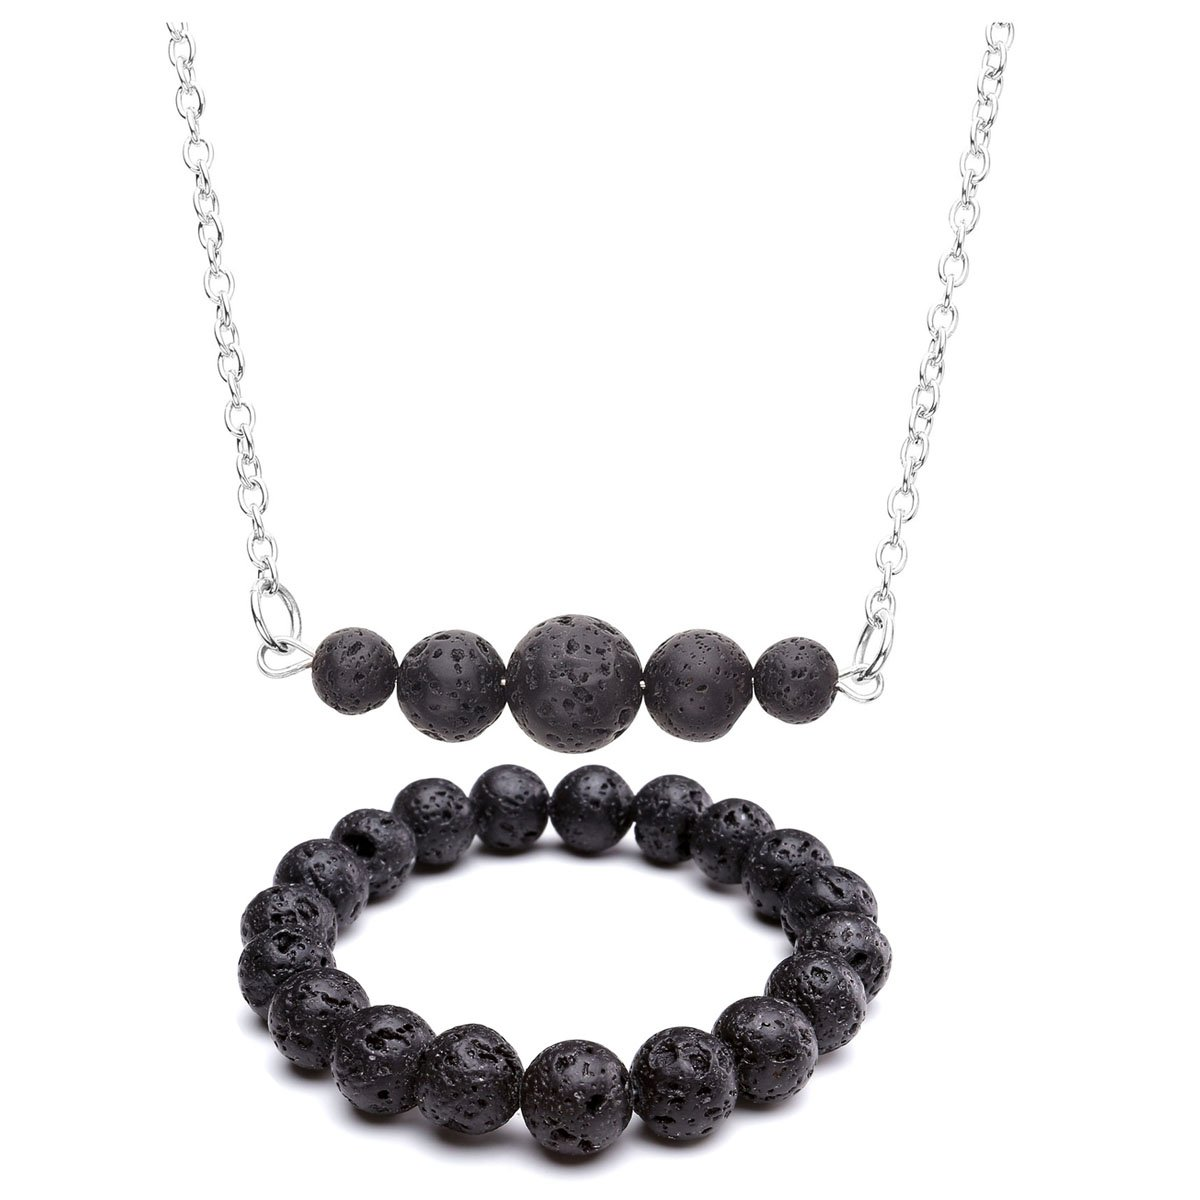 Top Plaza Women Aromatherapy Fashion Casual Black Lava Rock Stone Essential Oil Diffuser Natural Gemstone Pendant Necklace Bracelet Set ATPUS65443